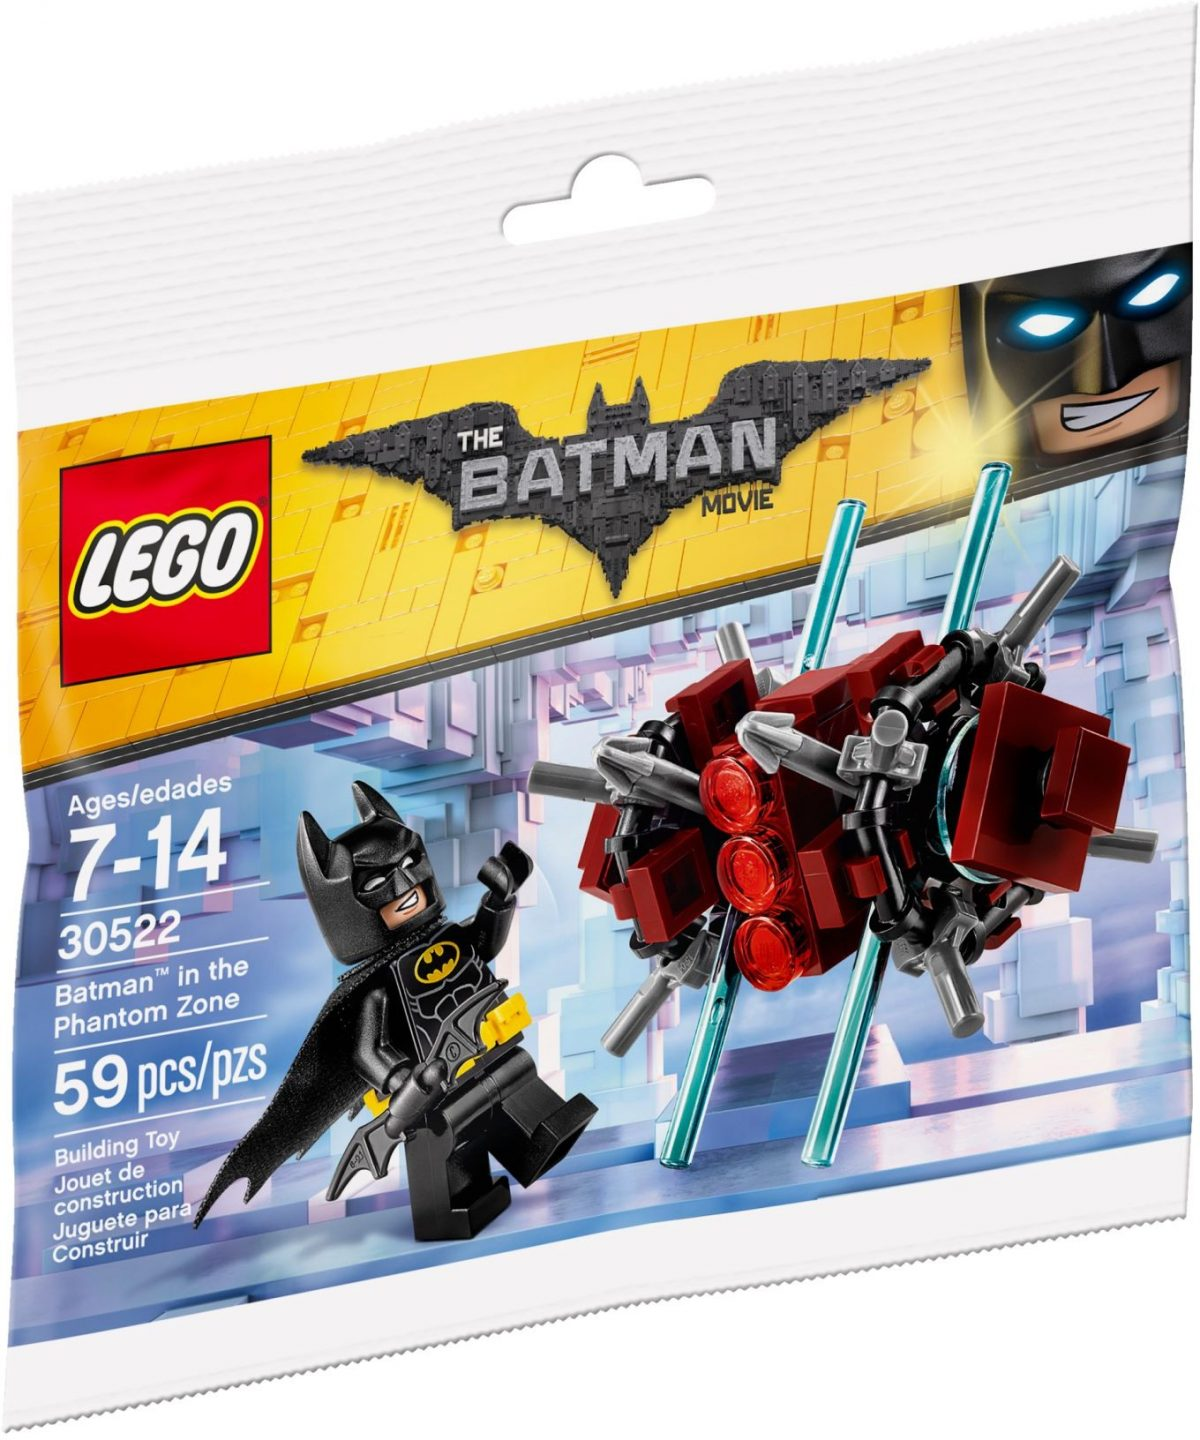 LEGO Batman Movie 30522 Batman in the Phantom Zone